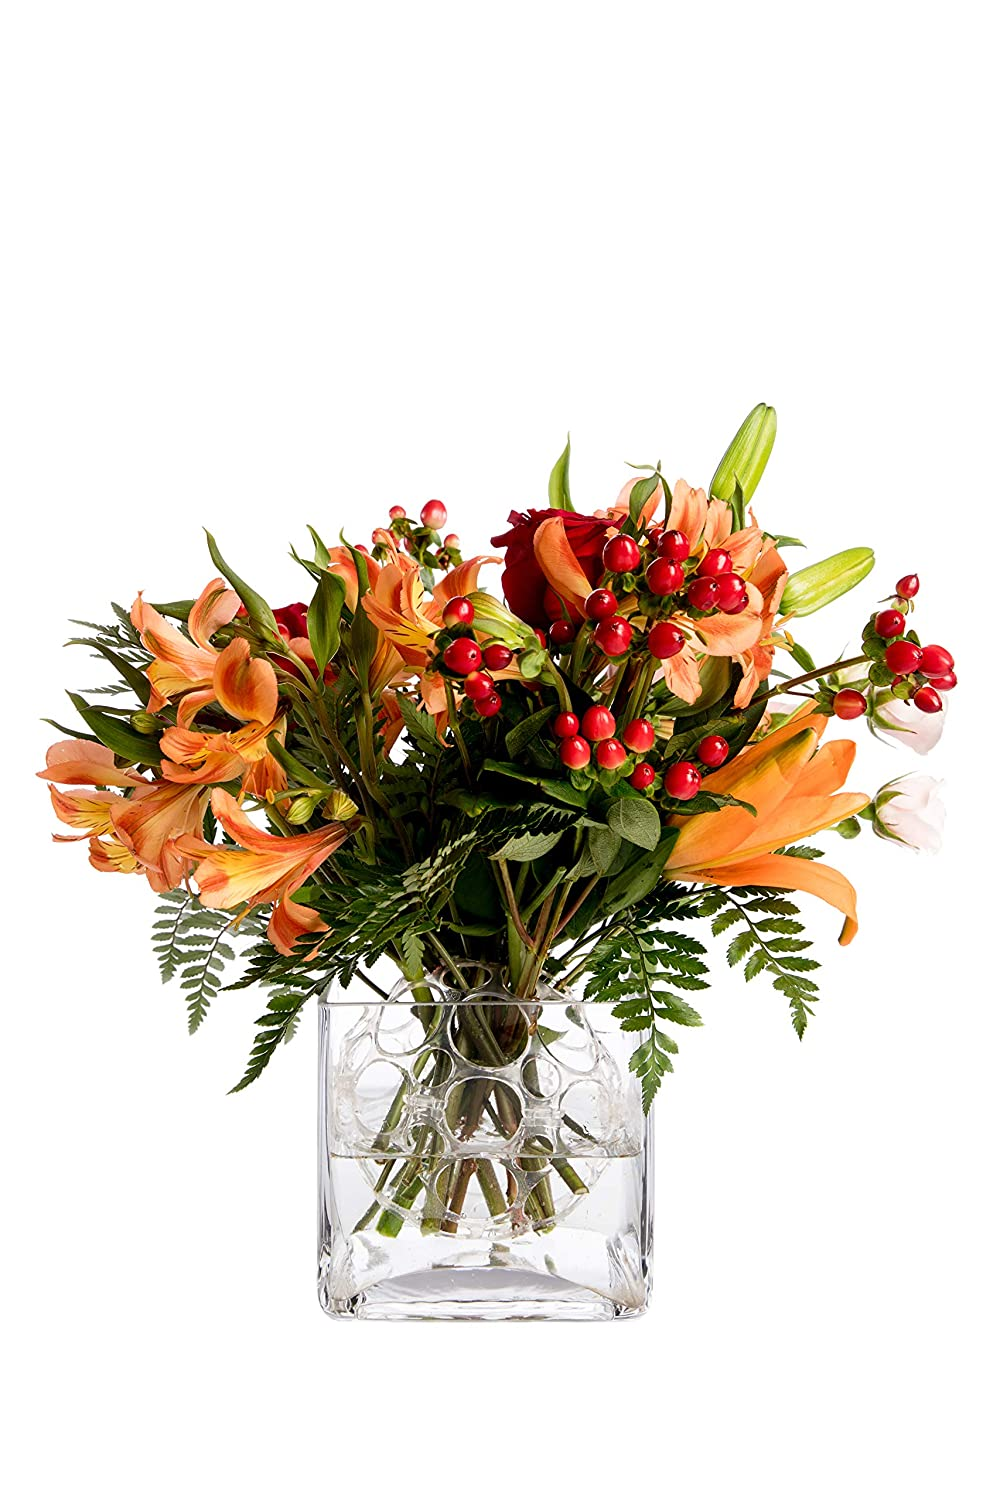 The Guppy Flower Holder Arranger for Fresh and Artificial Flower for Profesional and DIY Home Pack 9 FLora Guppy Inc